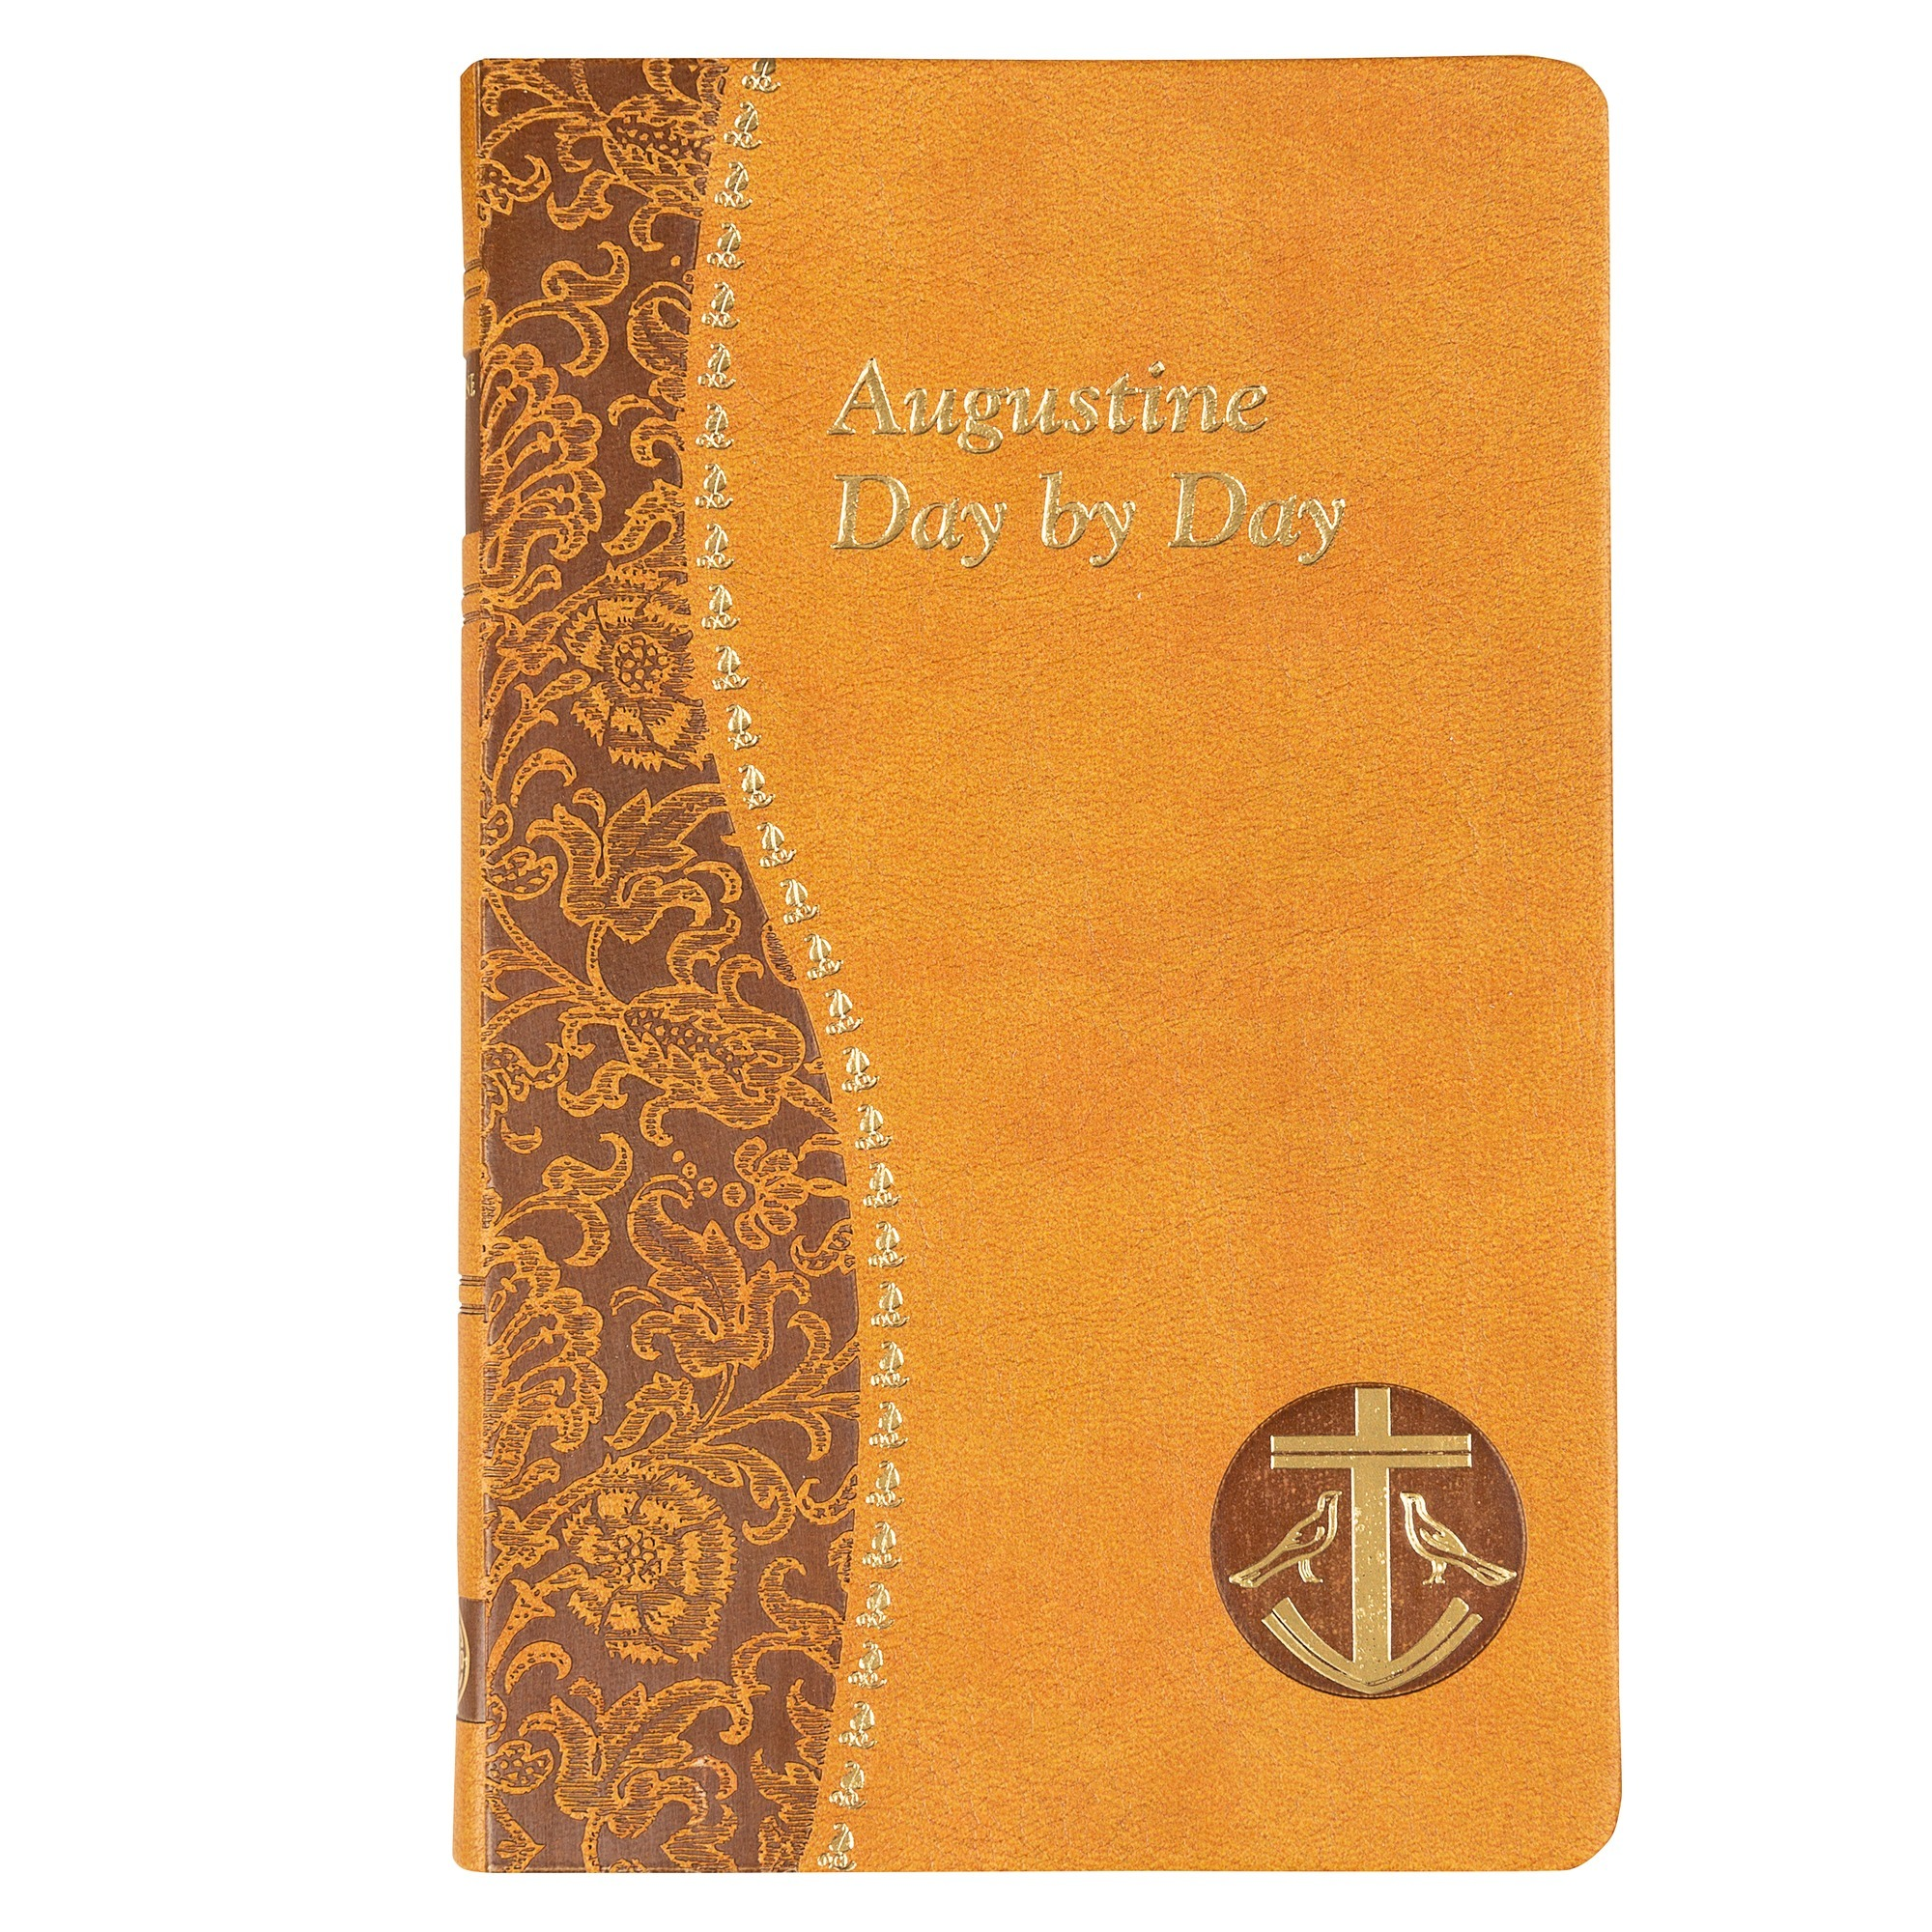 Catholic daily prayer and meditation books the catholic company 1021121 fandeluxe Image collections